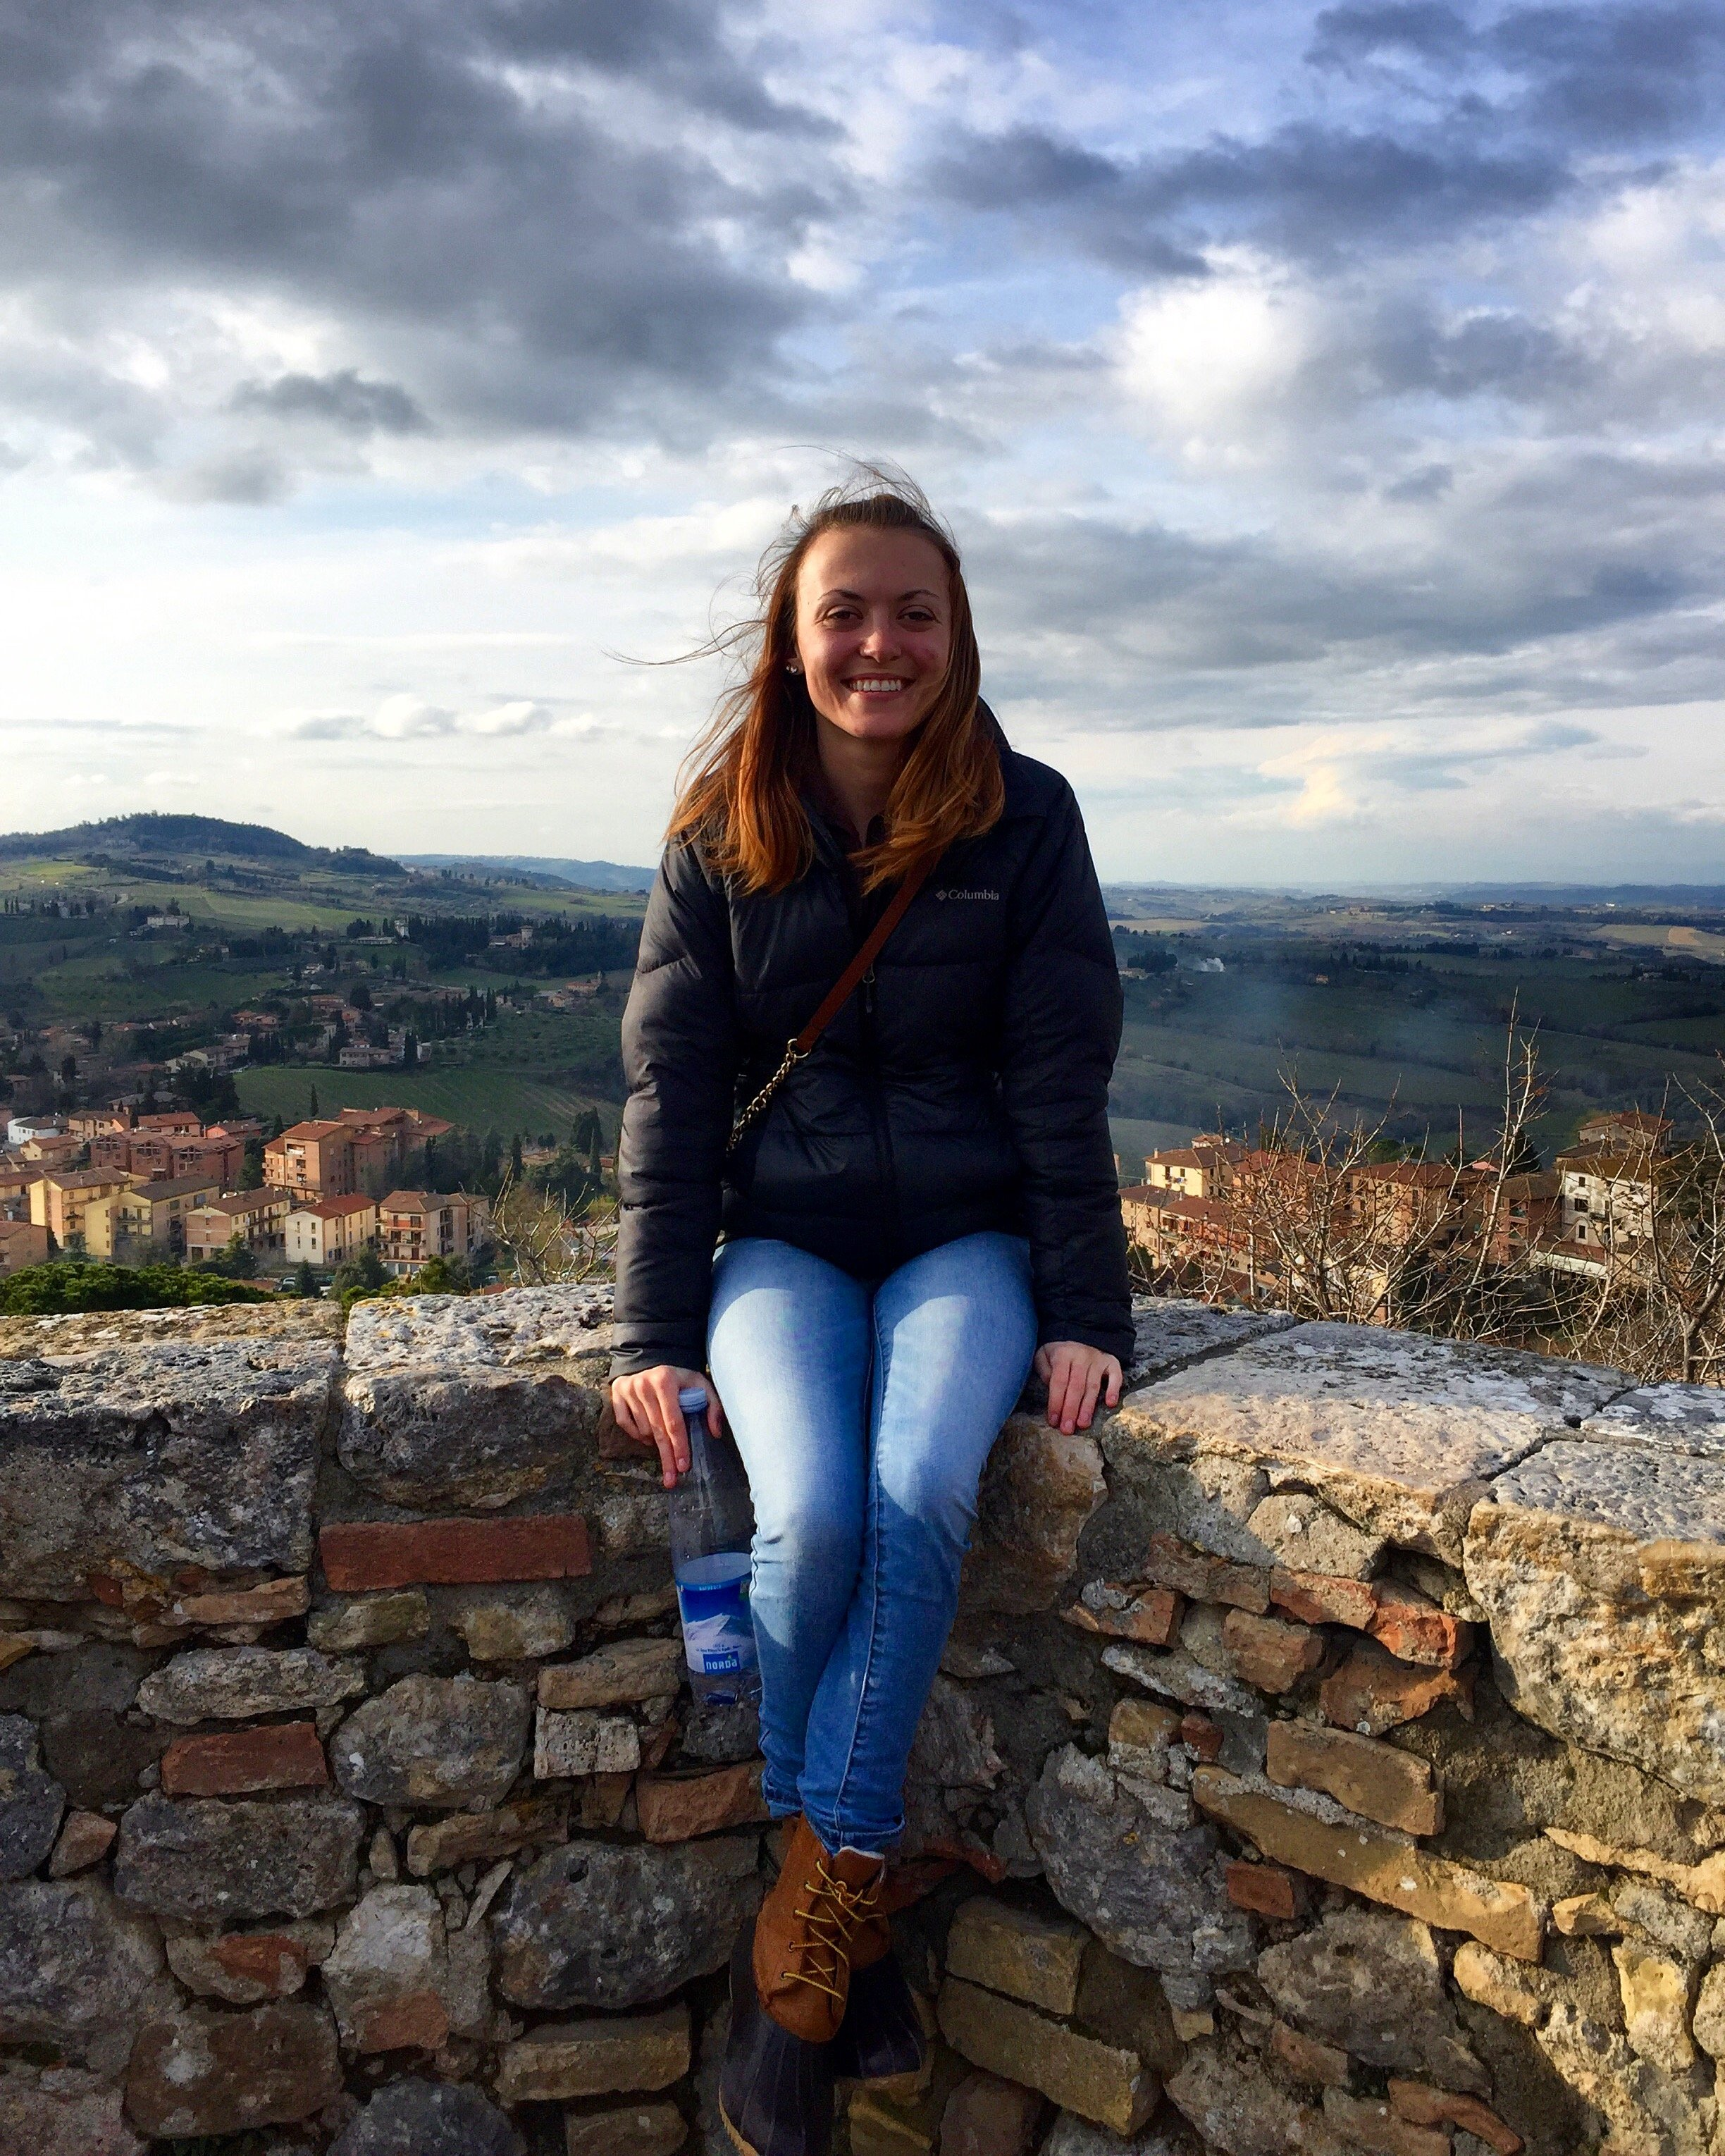 CAPAStudyAbroad_Florence_Spring2016_From_Samantha_Giordano14.jpg